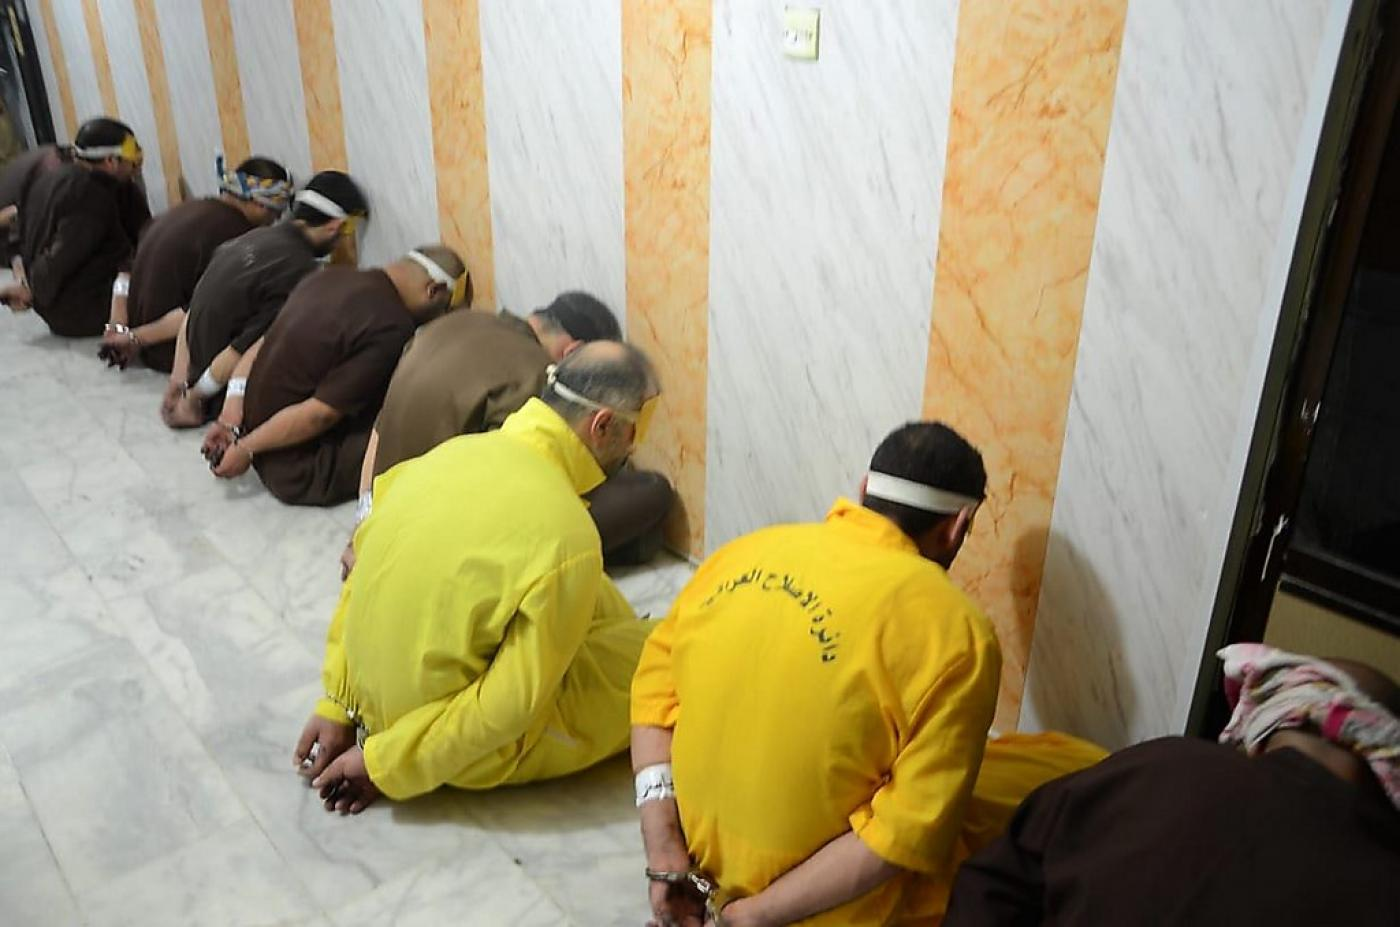 The statement by UN experts noted that there are currently some 4,000 prisoners slated for execution.